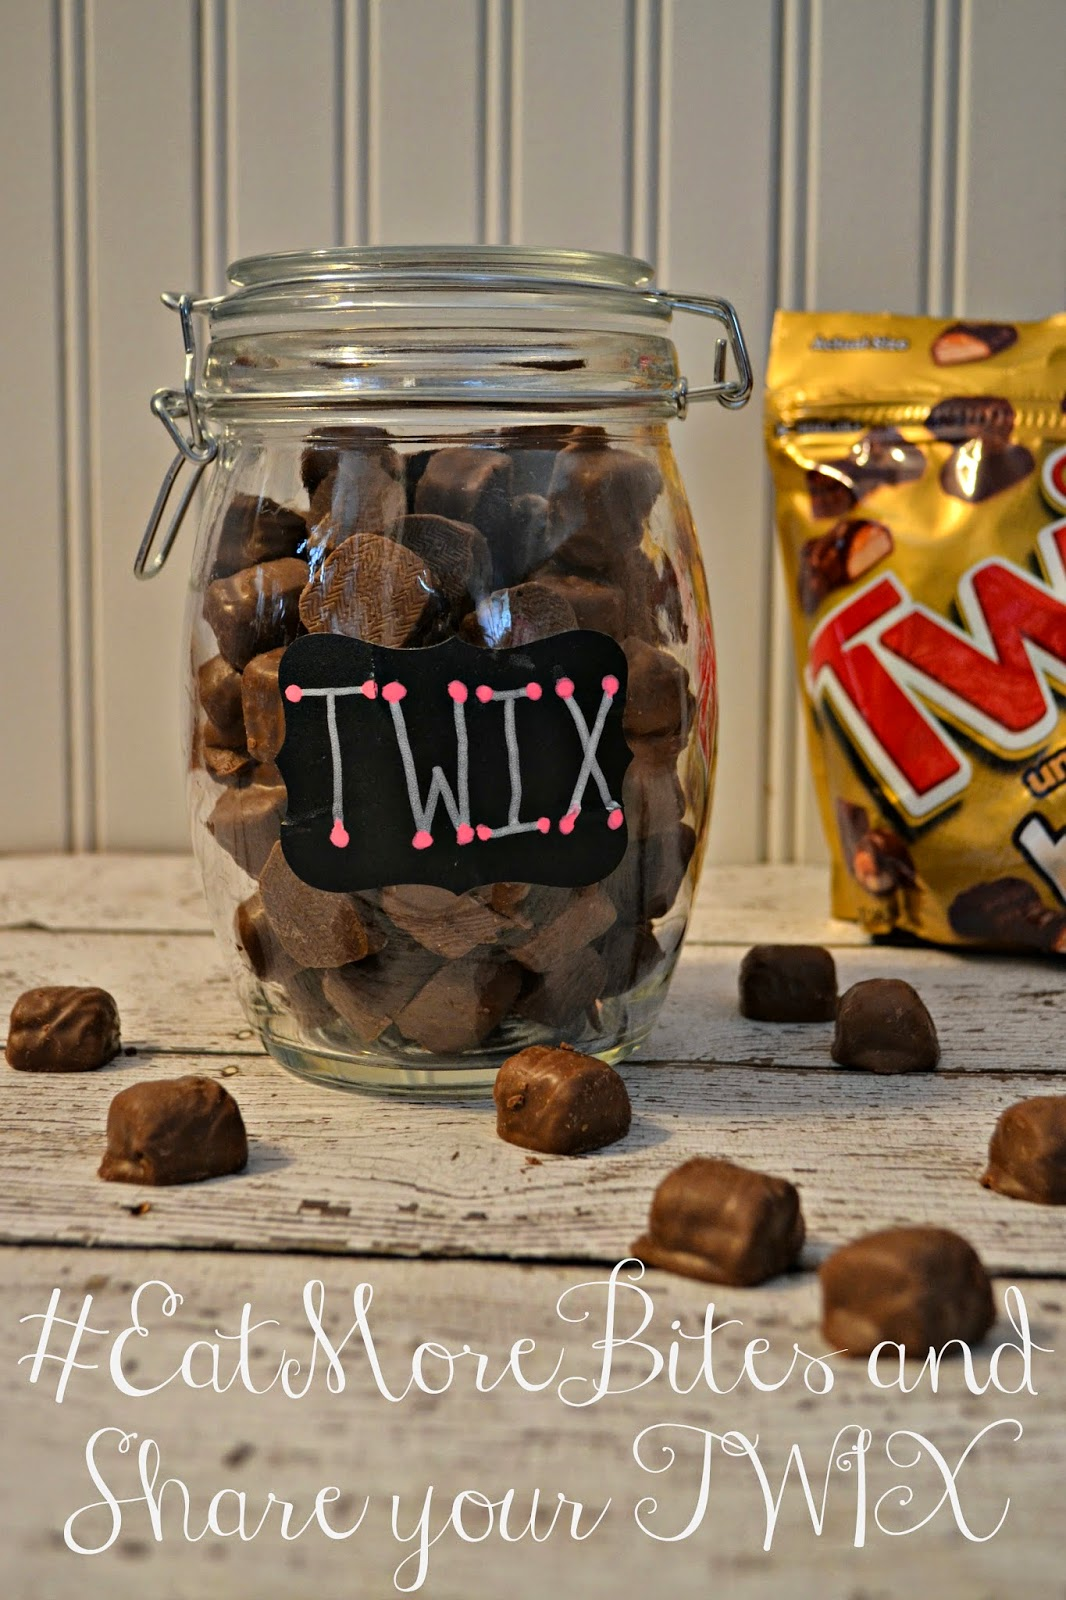 Share the TWIX love with your coworkers #EatMoreBites.  TWIX Bites Snack On-the-Go.